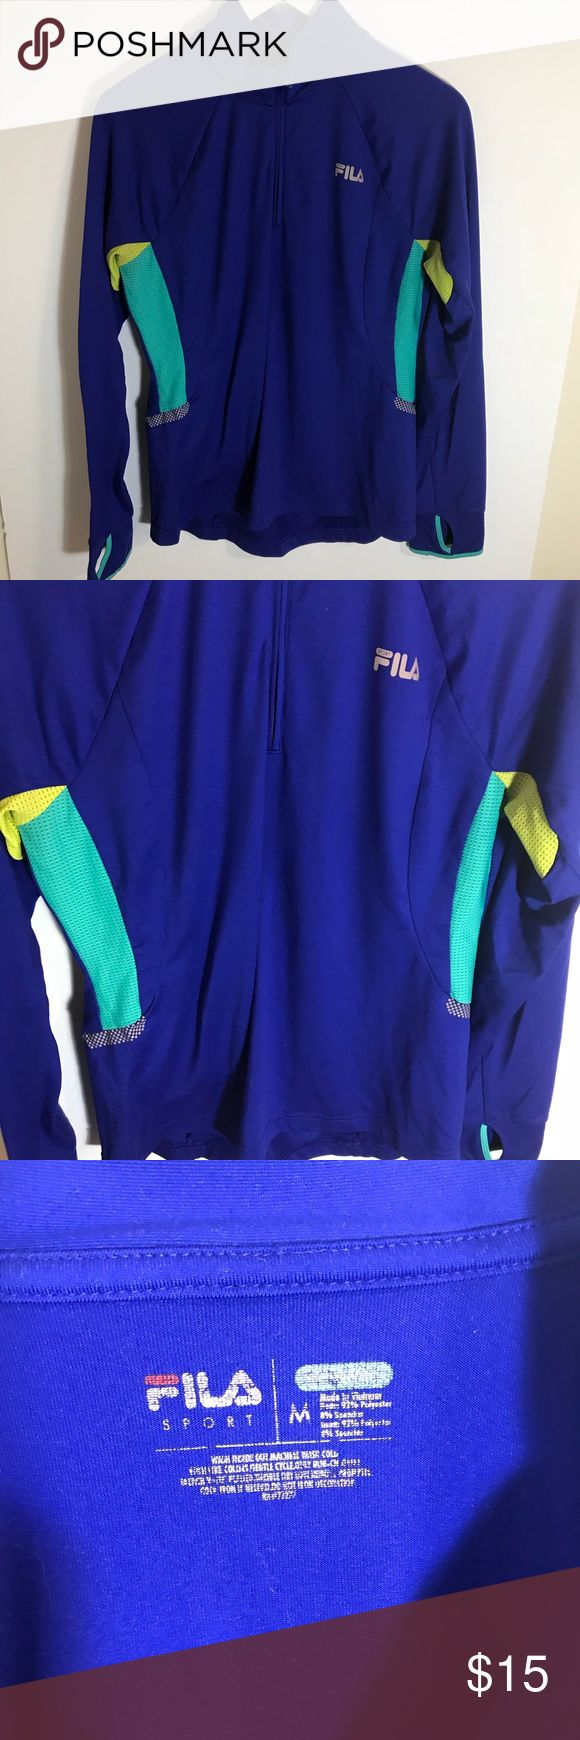 Fila Sport Gym Top long sleeve Fila Sport Gym Top long sleeve  Size Medium  Pre-loved but still in good shape see pics Fila Tops Tees - Long Sleeve